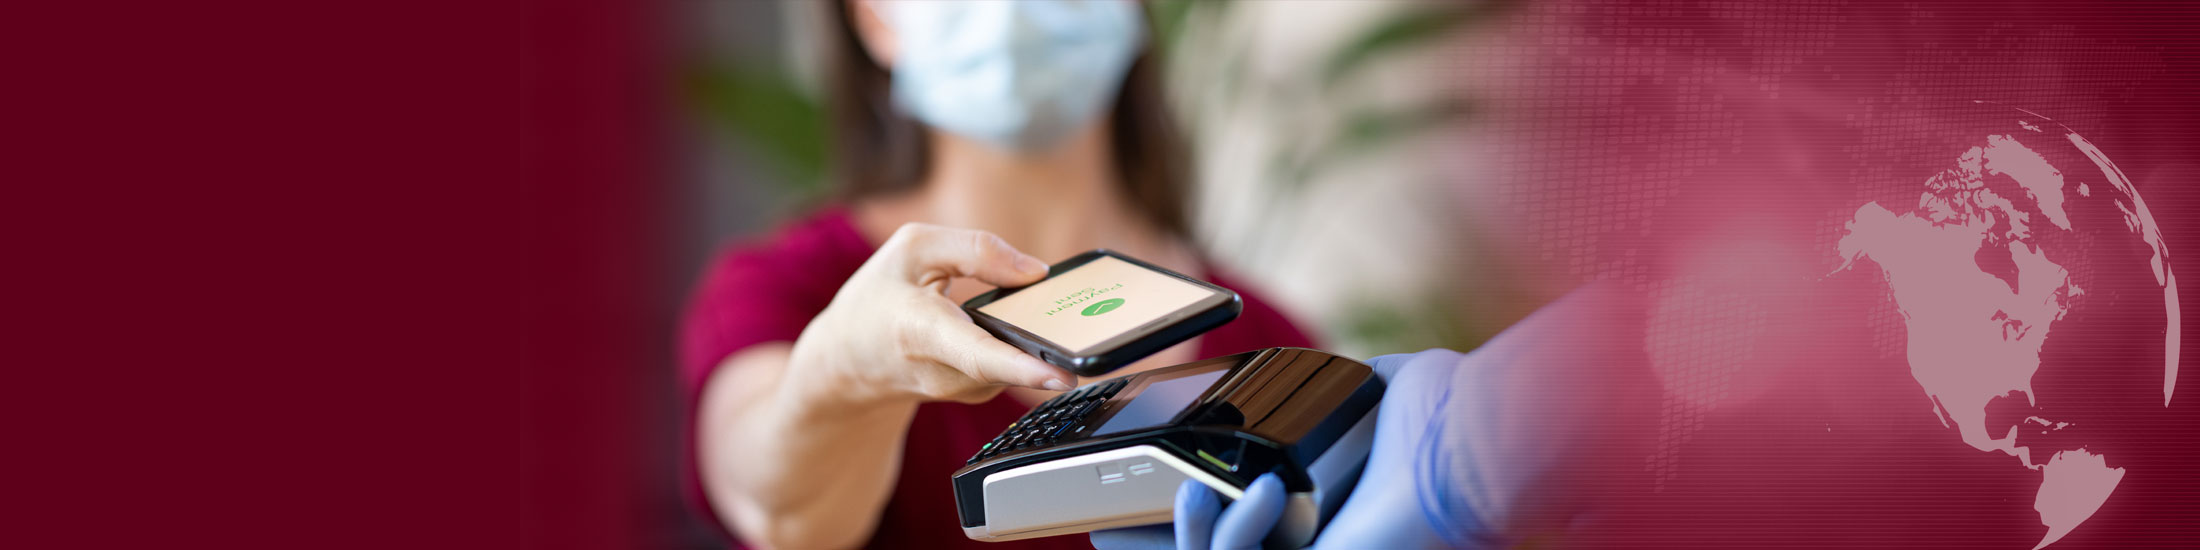 Contactless Increasing as 'Preferred Payment Method' in U.S.